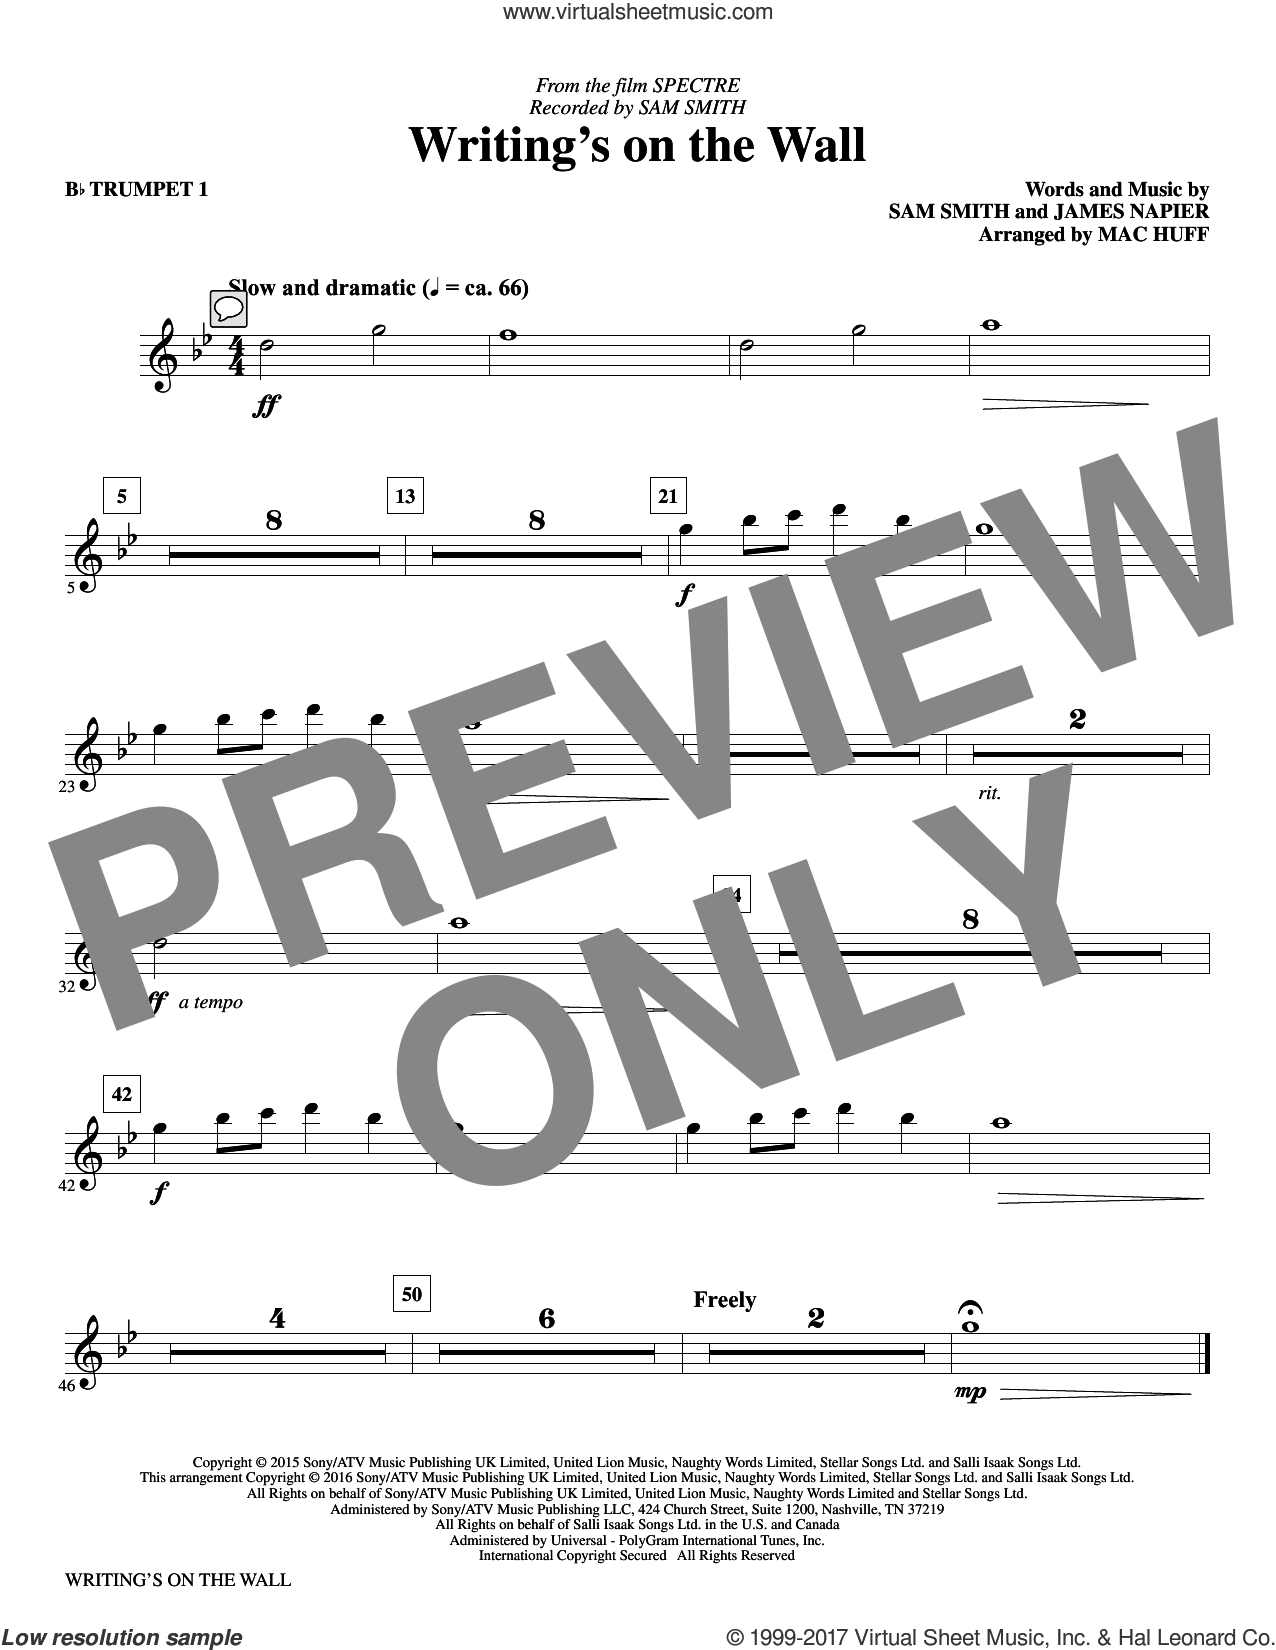 Writing's on the Wall (complete set of parts) sheet music for orchestra/band by Mac Huff, James Napier and Sam Smith, intermediate